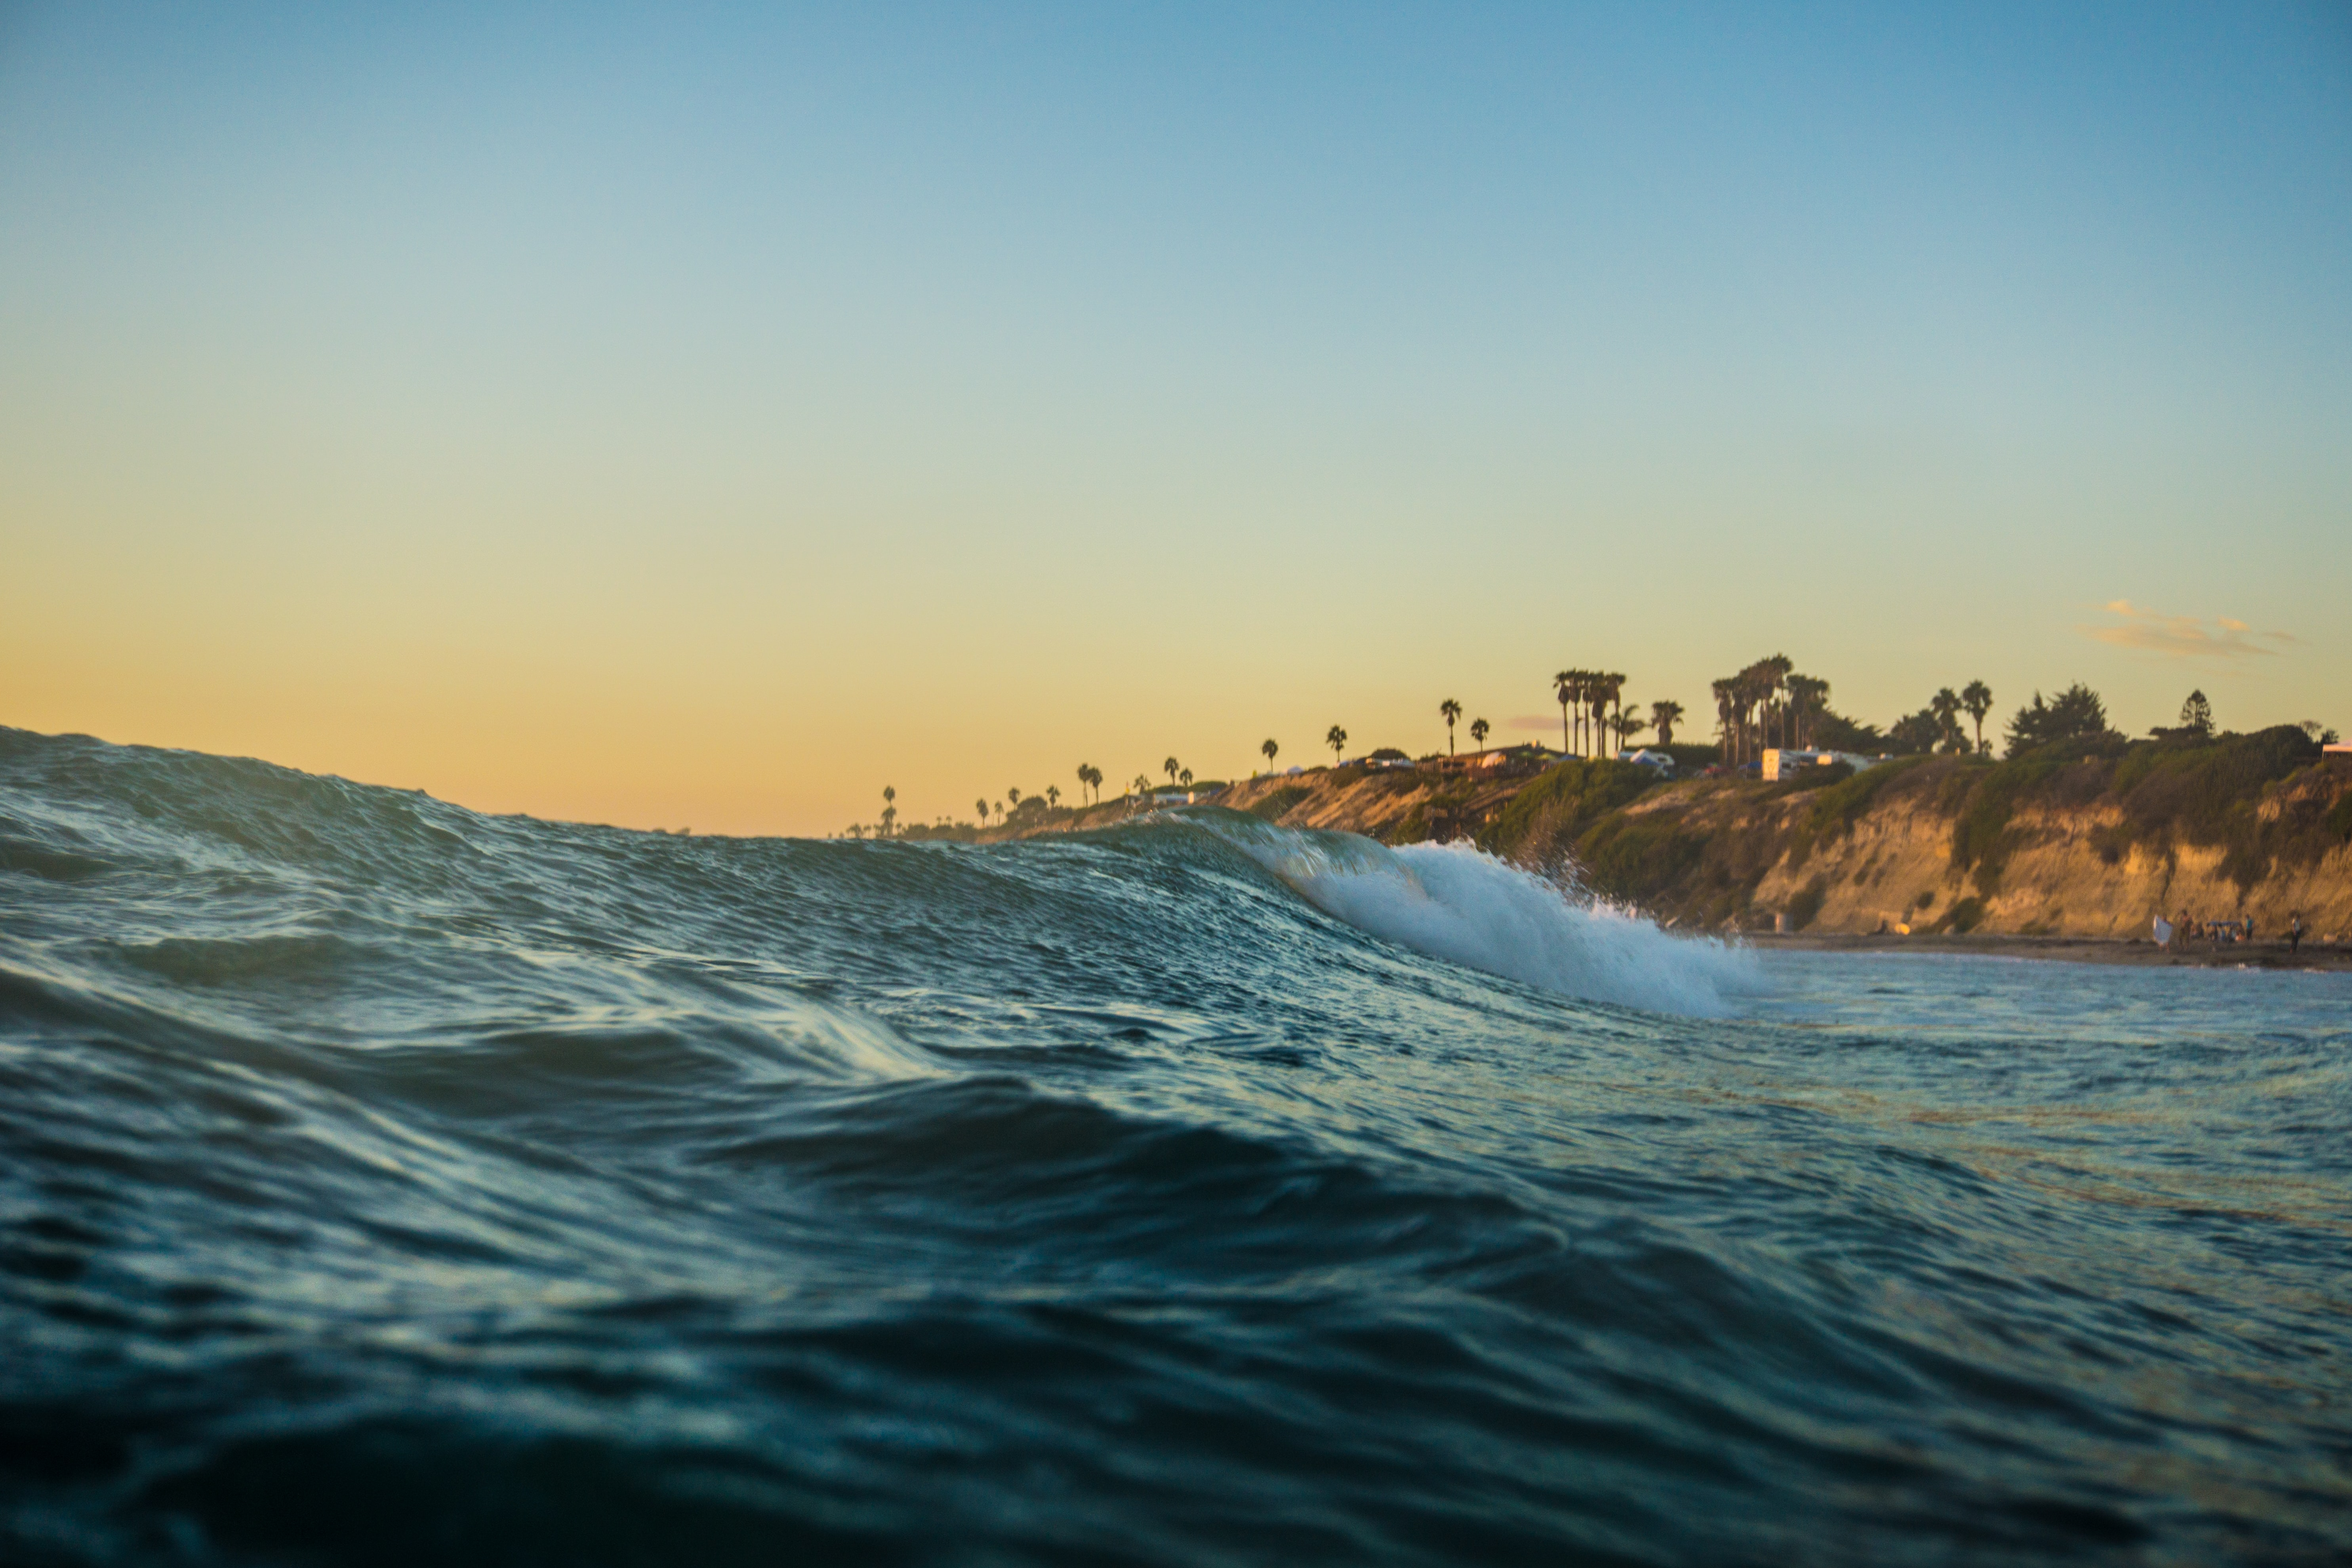 photography of ocean waves at daytime